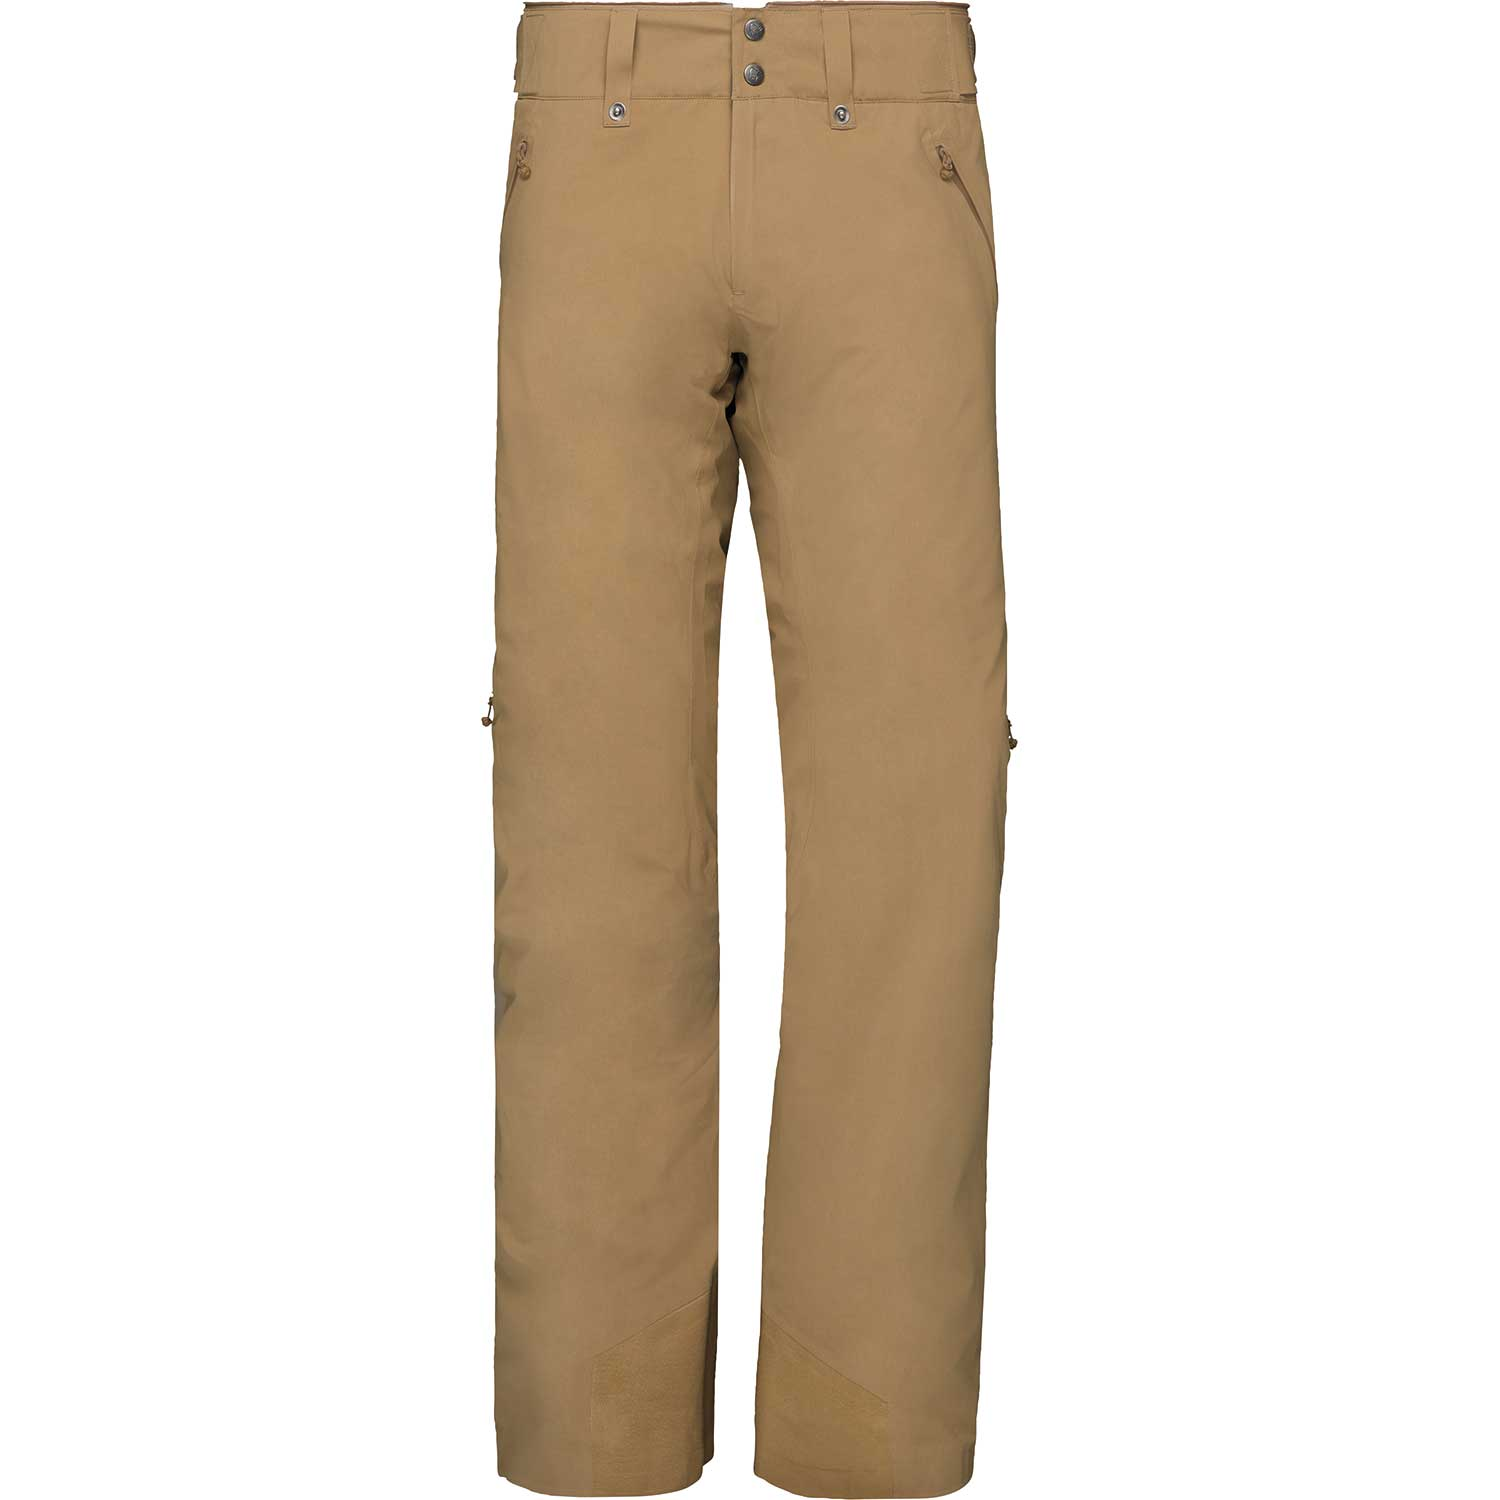 røldal Gore-Tex insulated Pants (M)